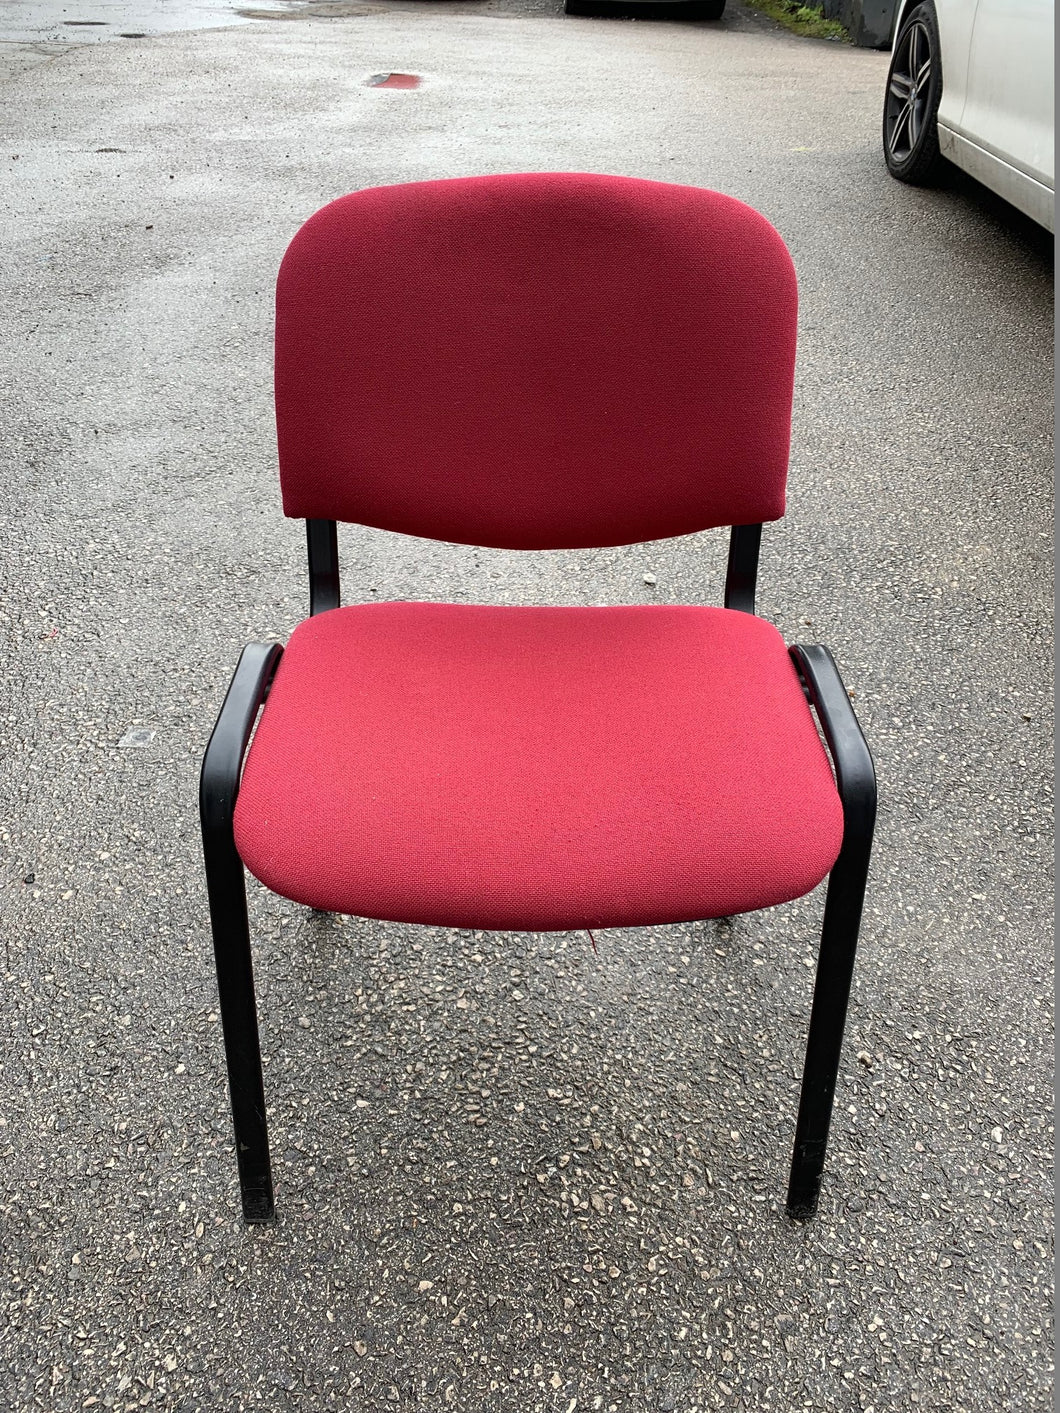 Red Cloth Stackable Meeting/Conference Chair - Flogit2us.com